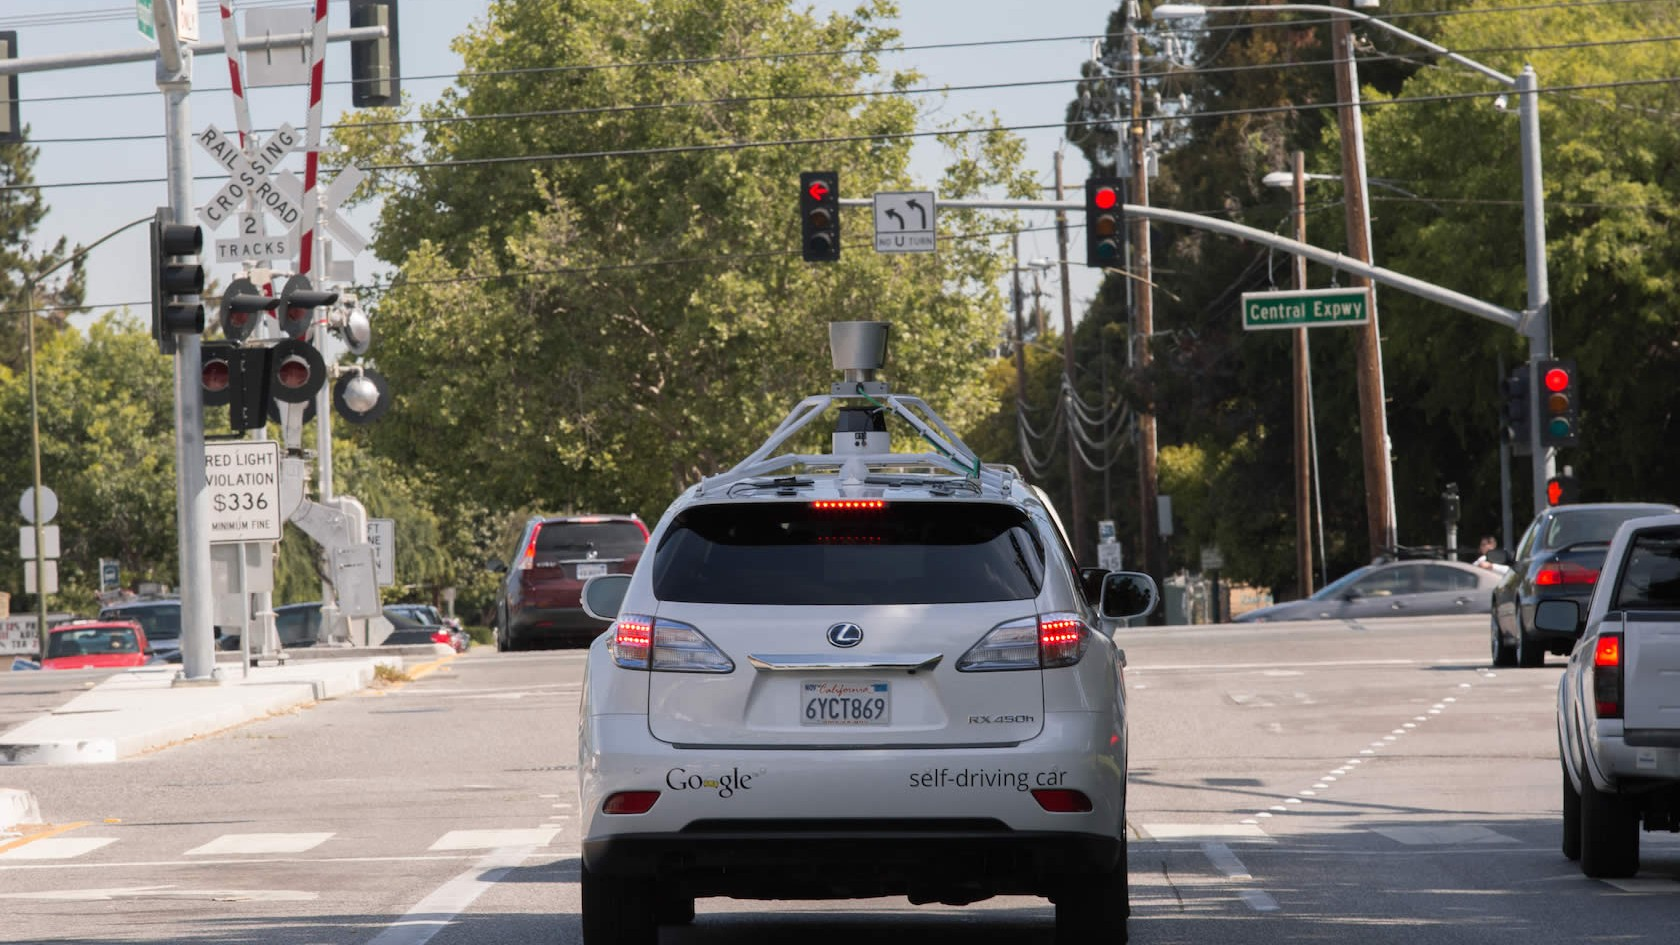 Google to Congress: Go Easy, Hurry Up on Self-Driving Car Regulations